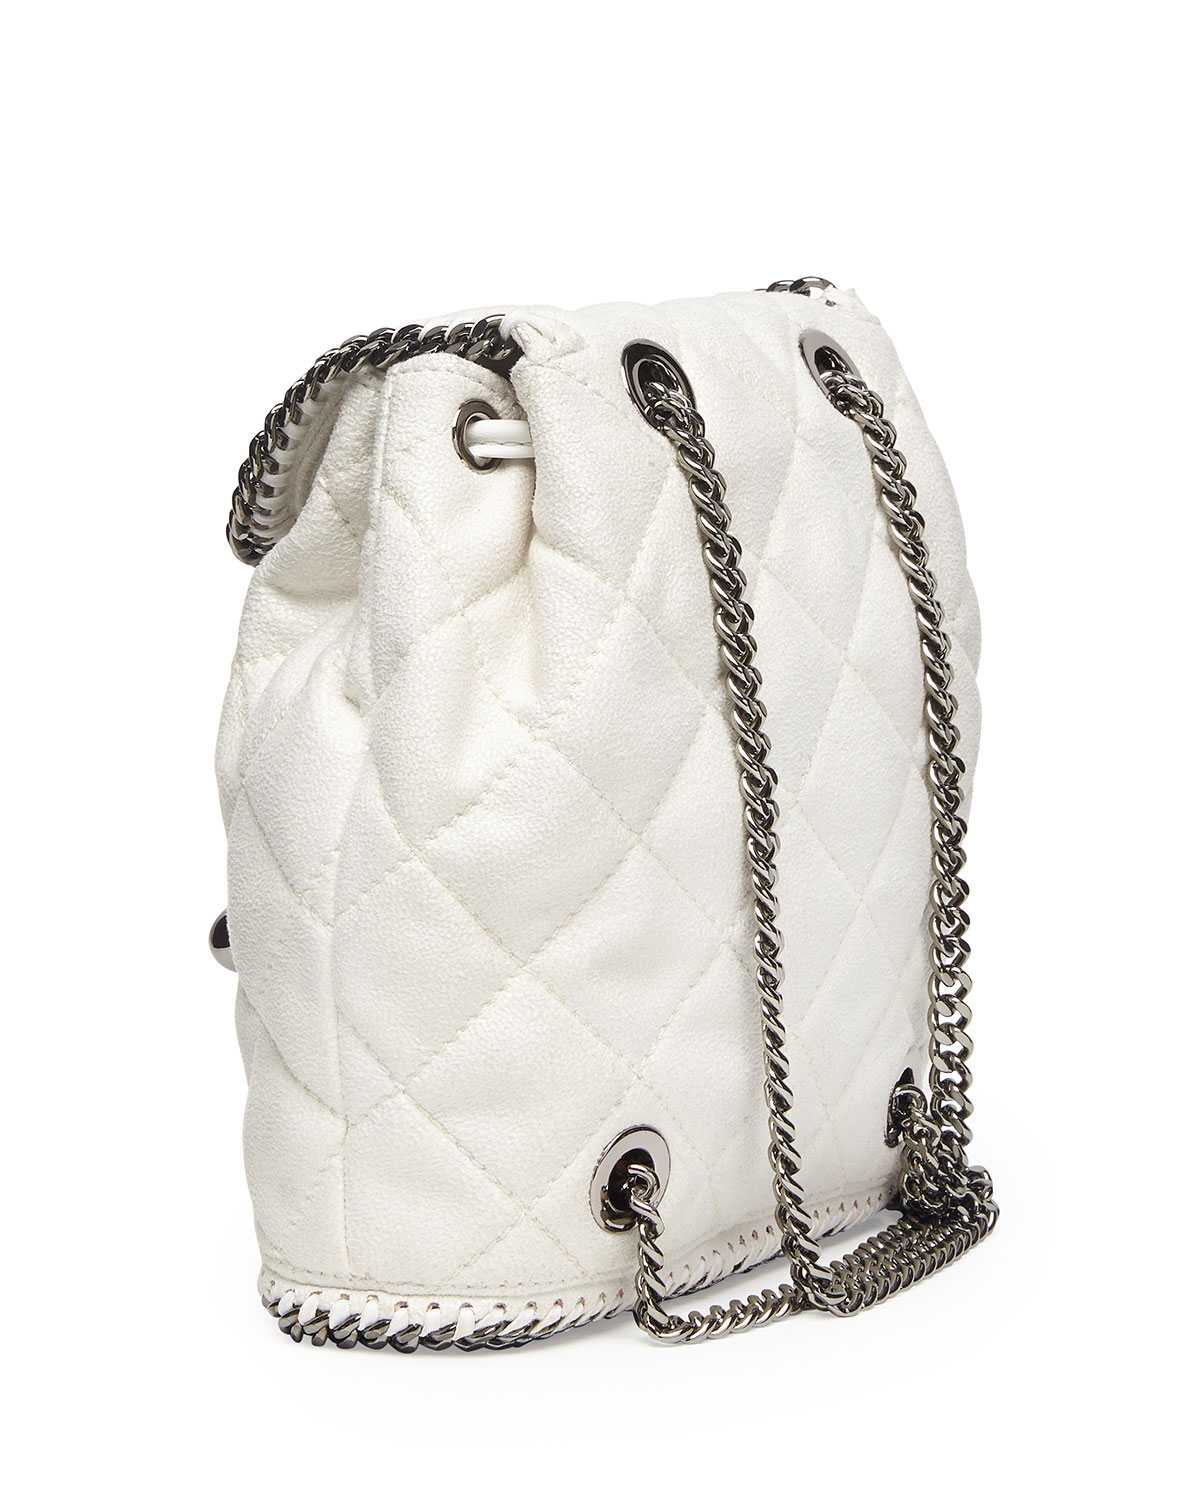 stella mccartney falabella quilted mini backpack in white chalk lyst. Black Bedroom Furniture Sets. Home Design Ideas